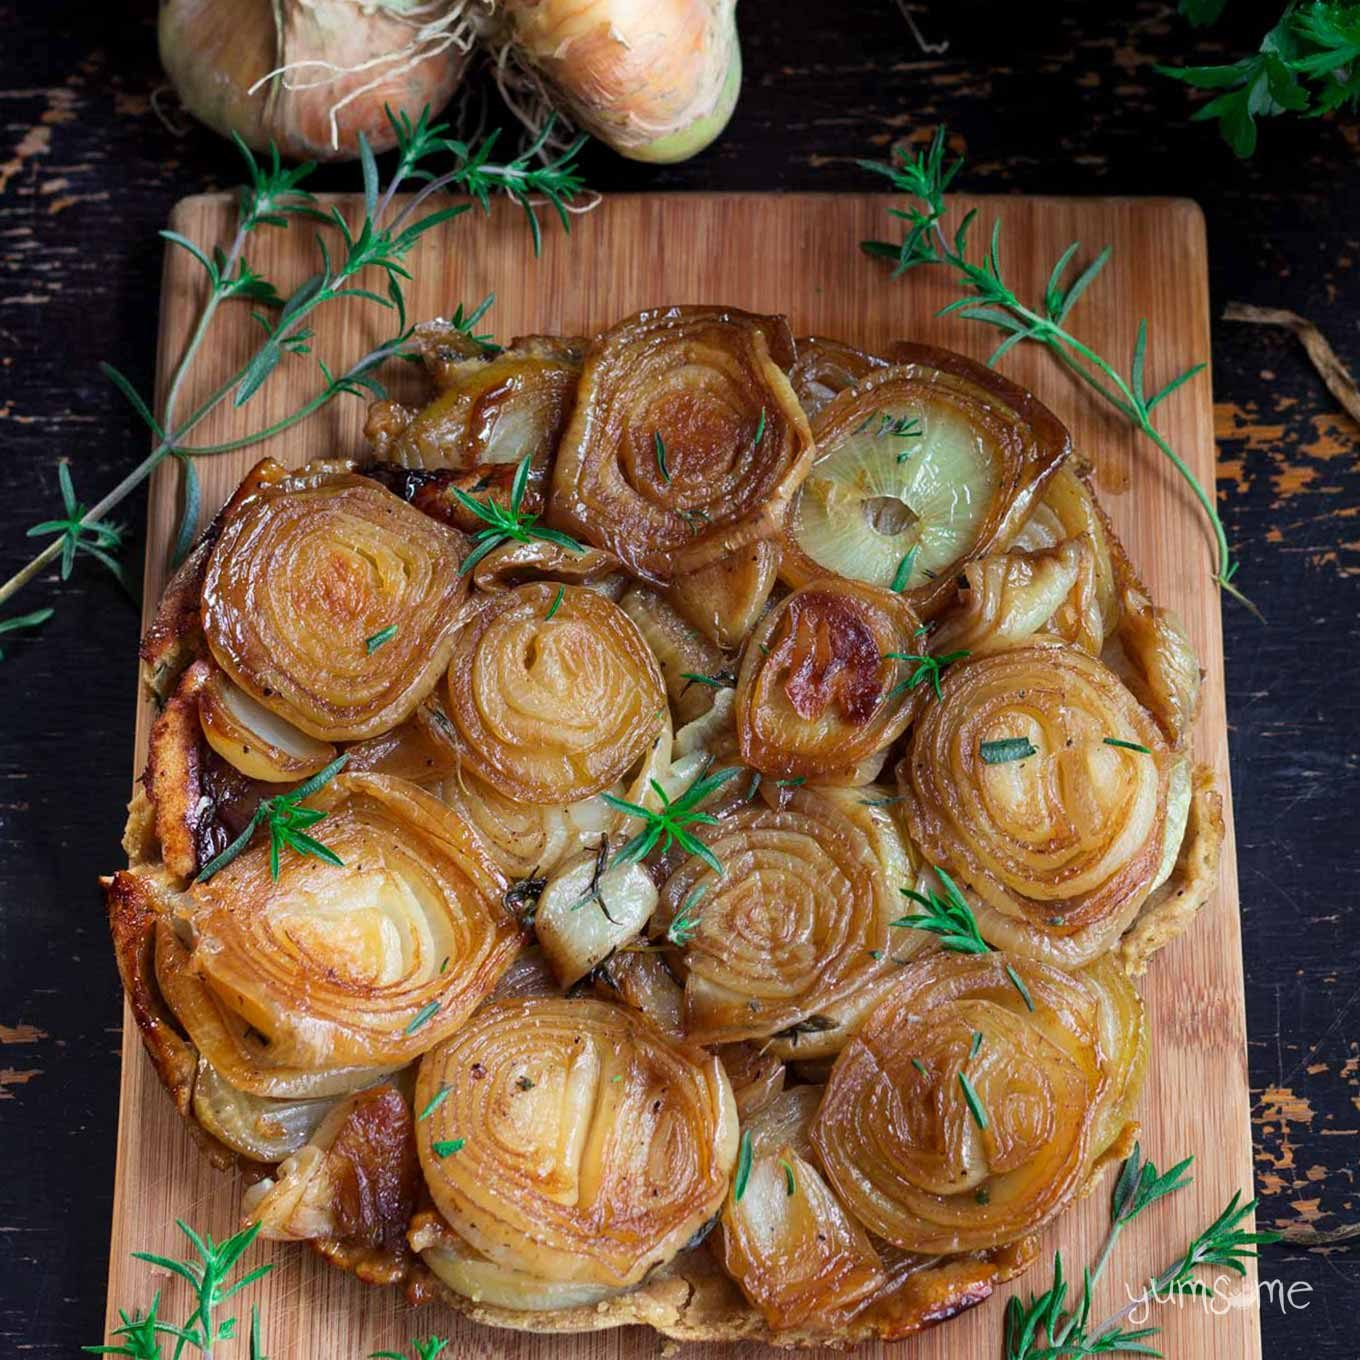 Overhead view of vegan caramelized onion tart on a black table, with some onions and herbs.